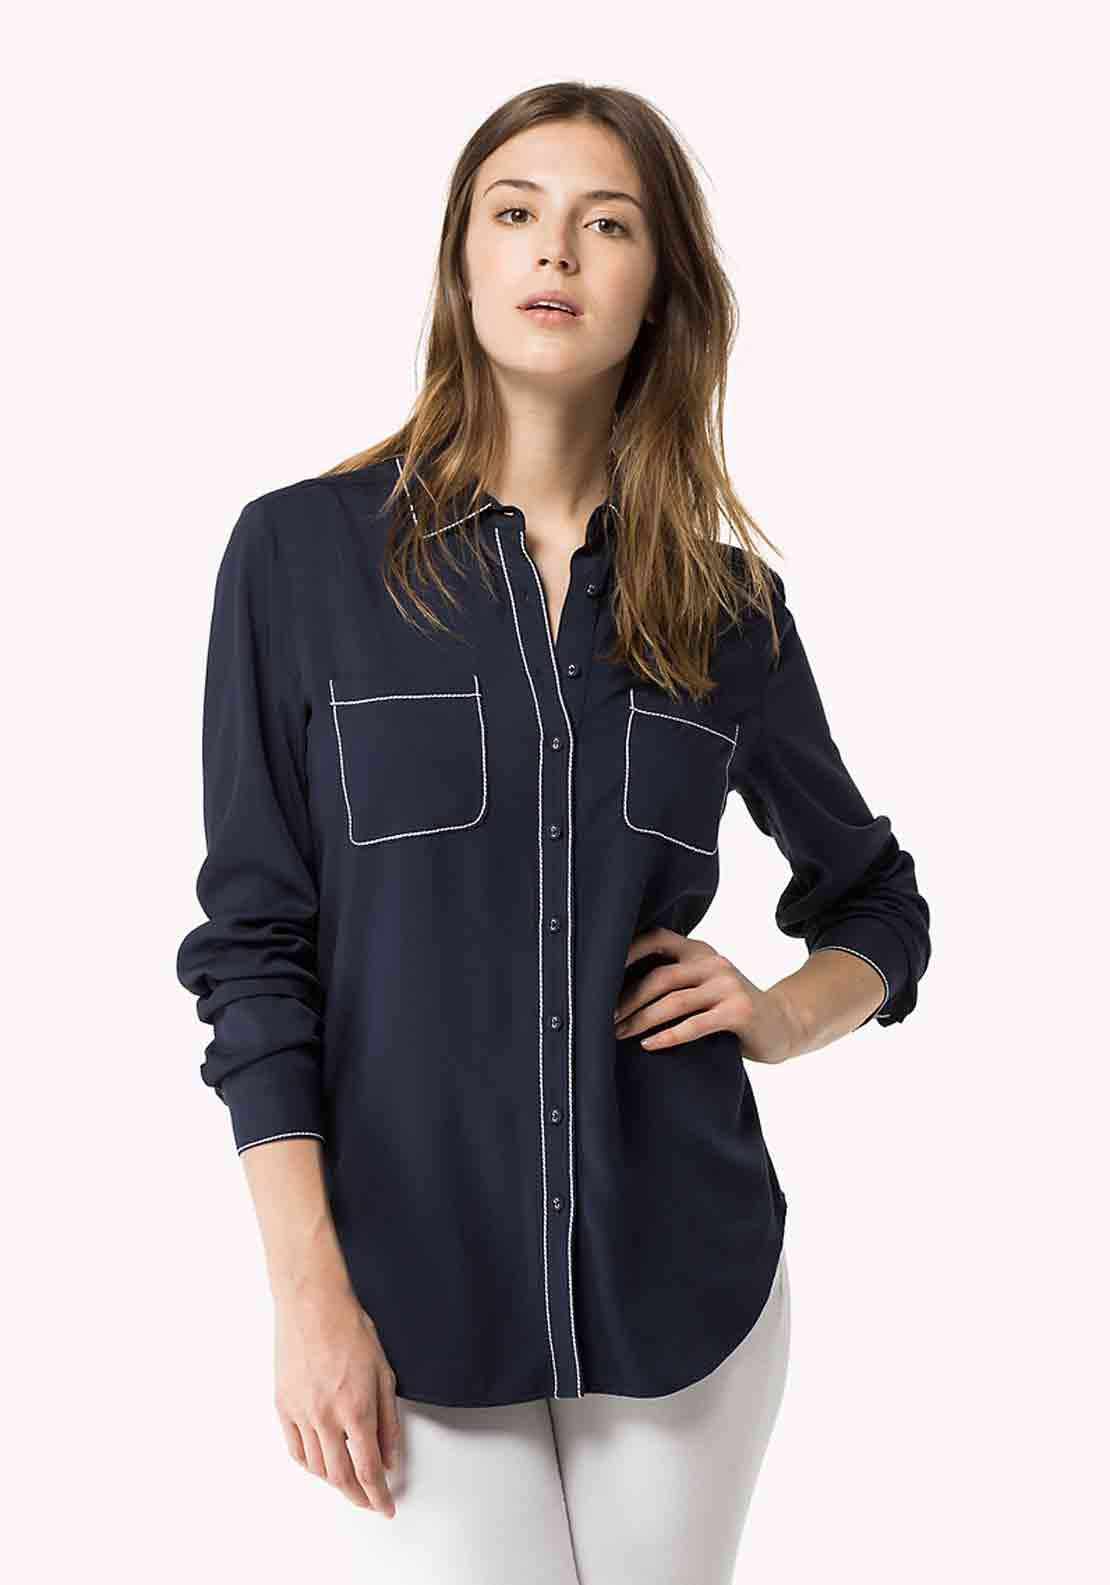 Tommy Hilfiger Womens Nicola Stitch Trim Blouse, Navy